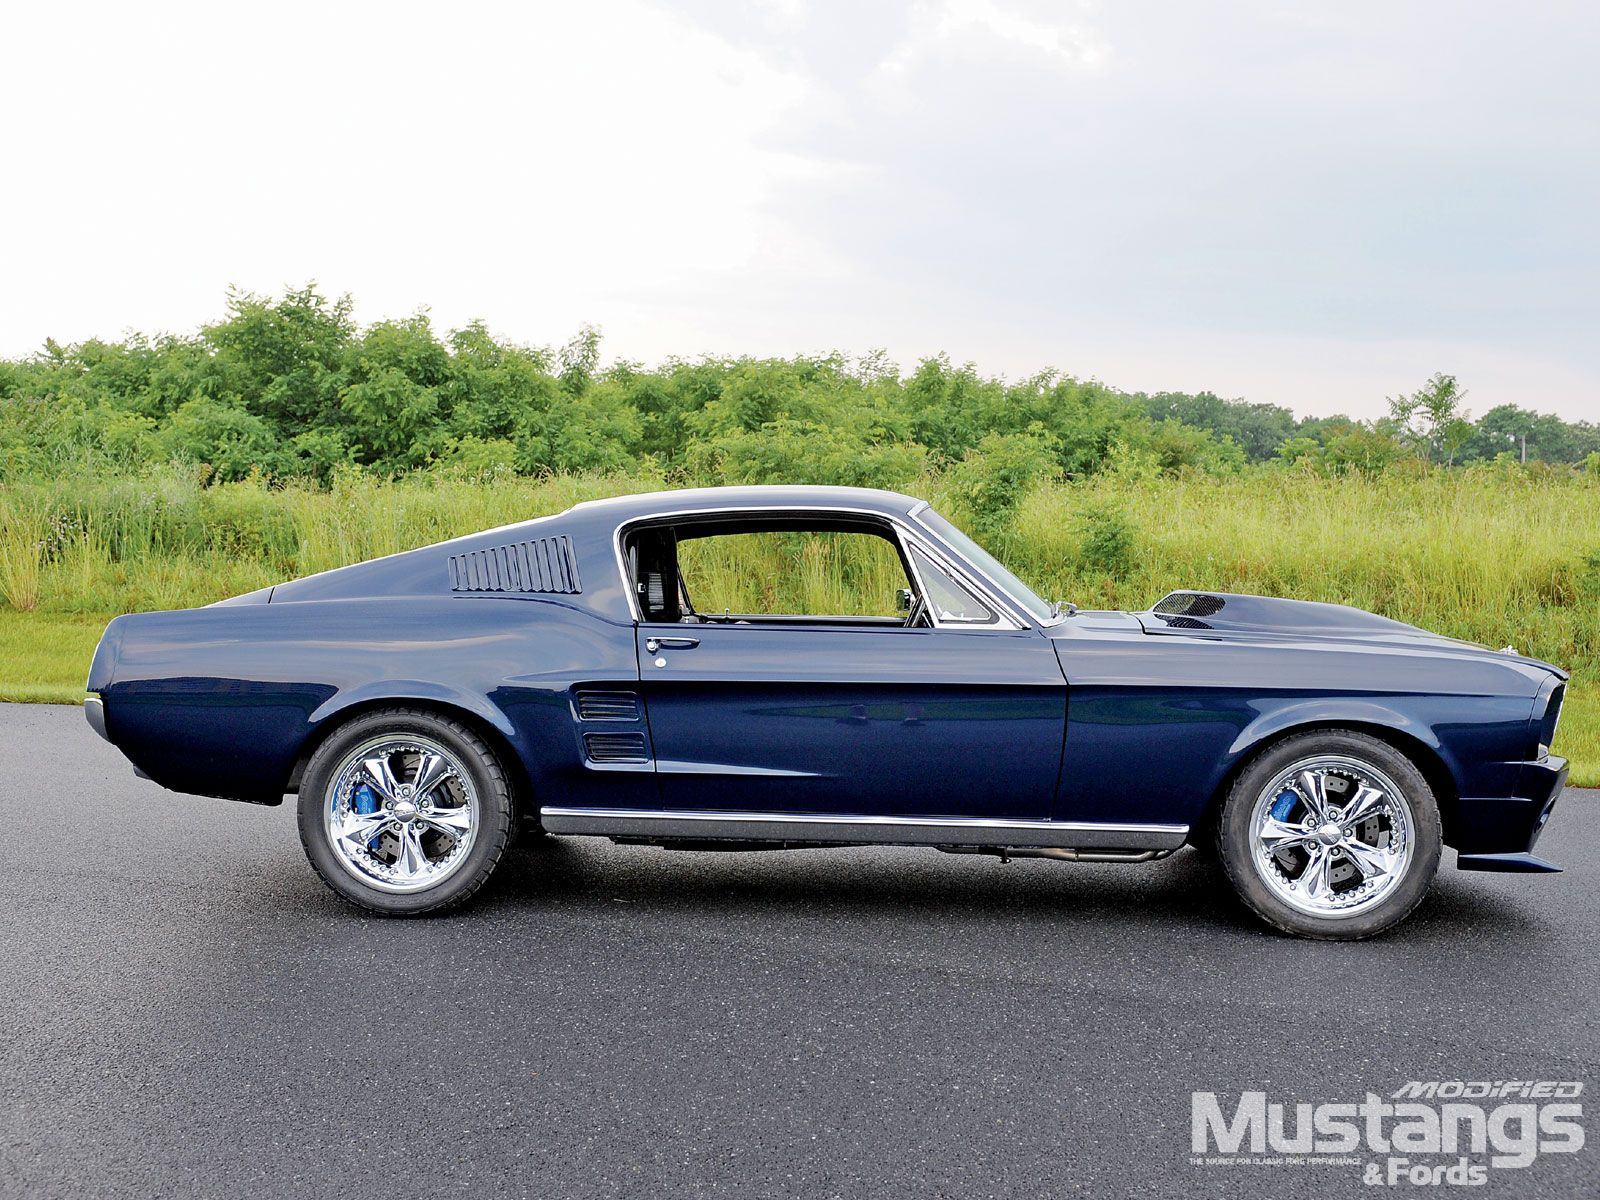 1967 Ford Mustang 1967 Ford Mustang Fastback For Sale Mustang